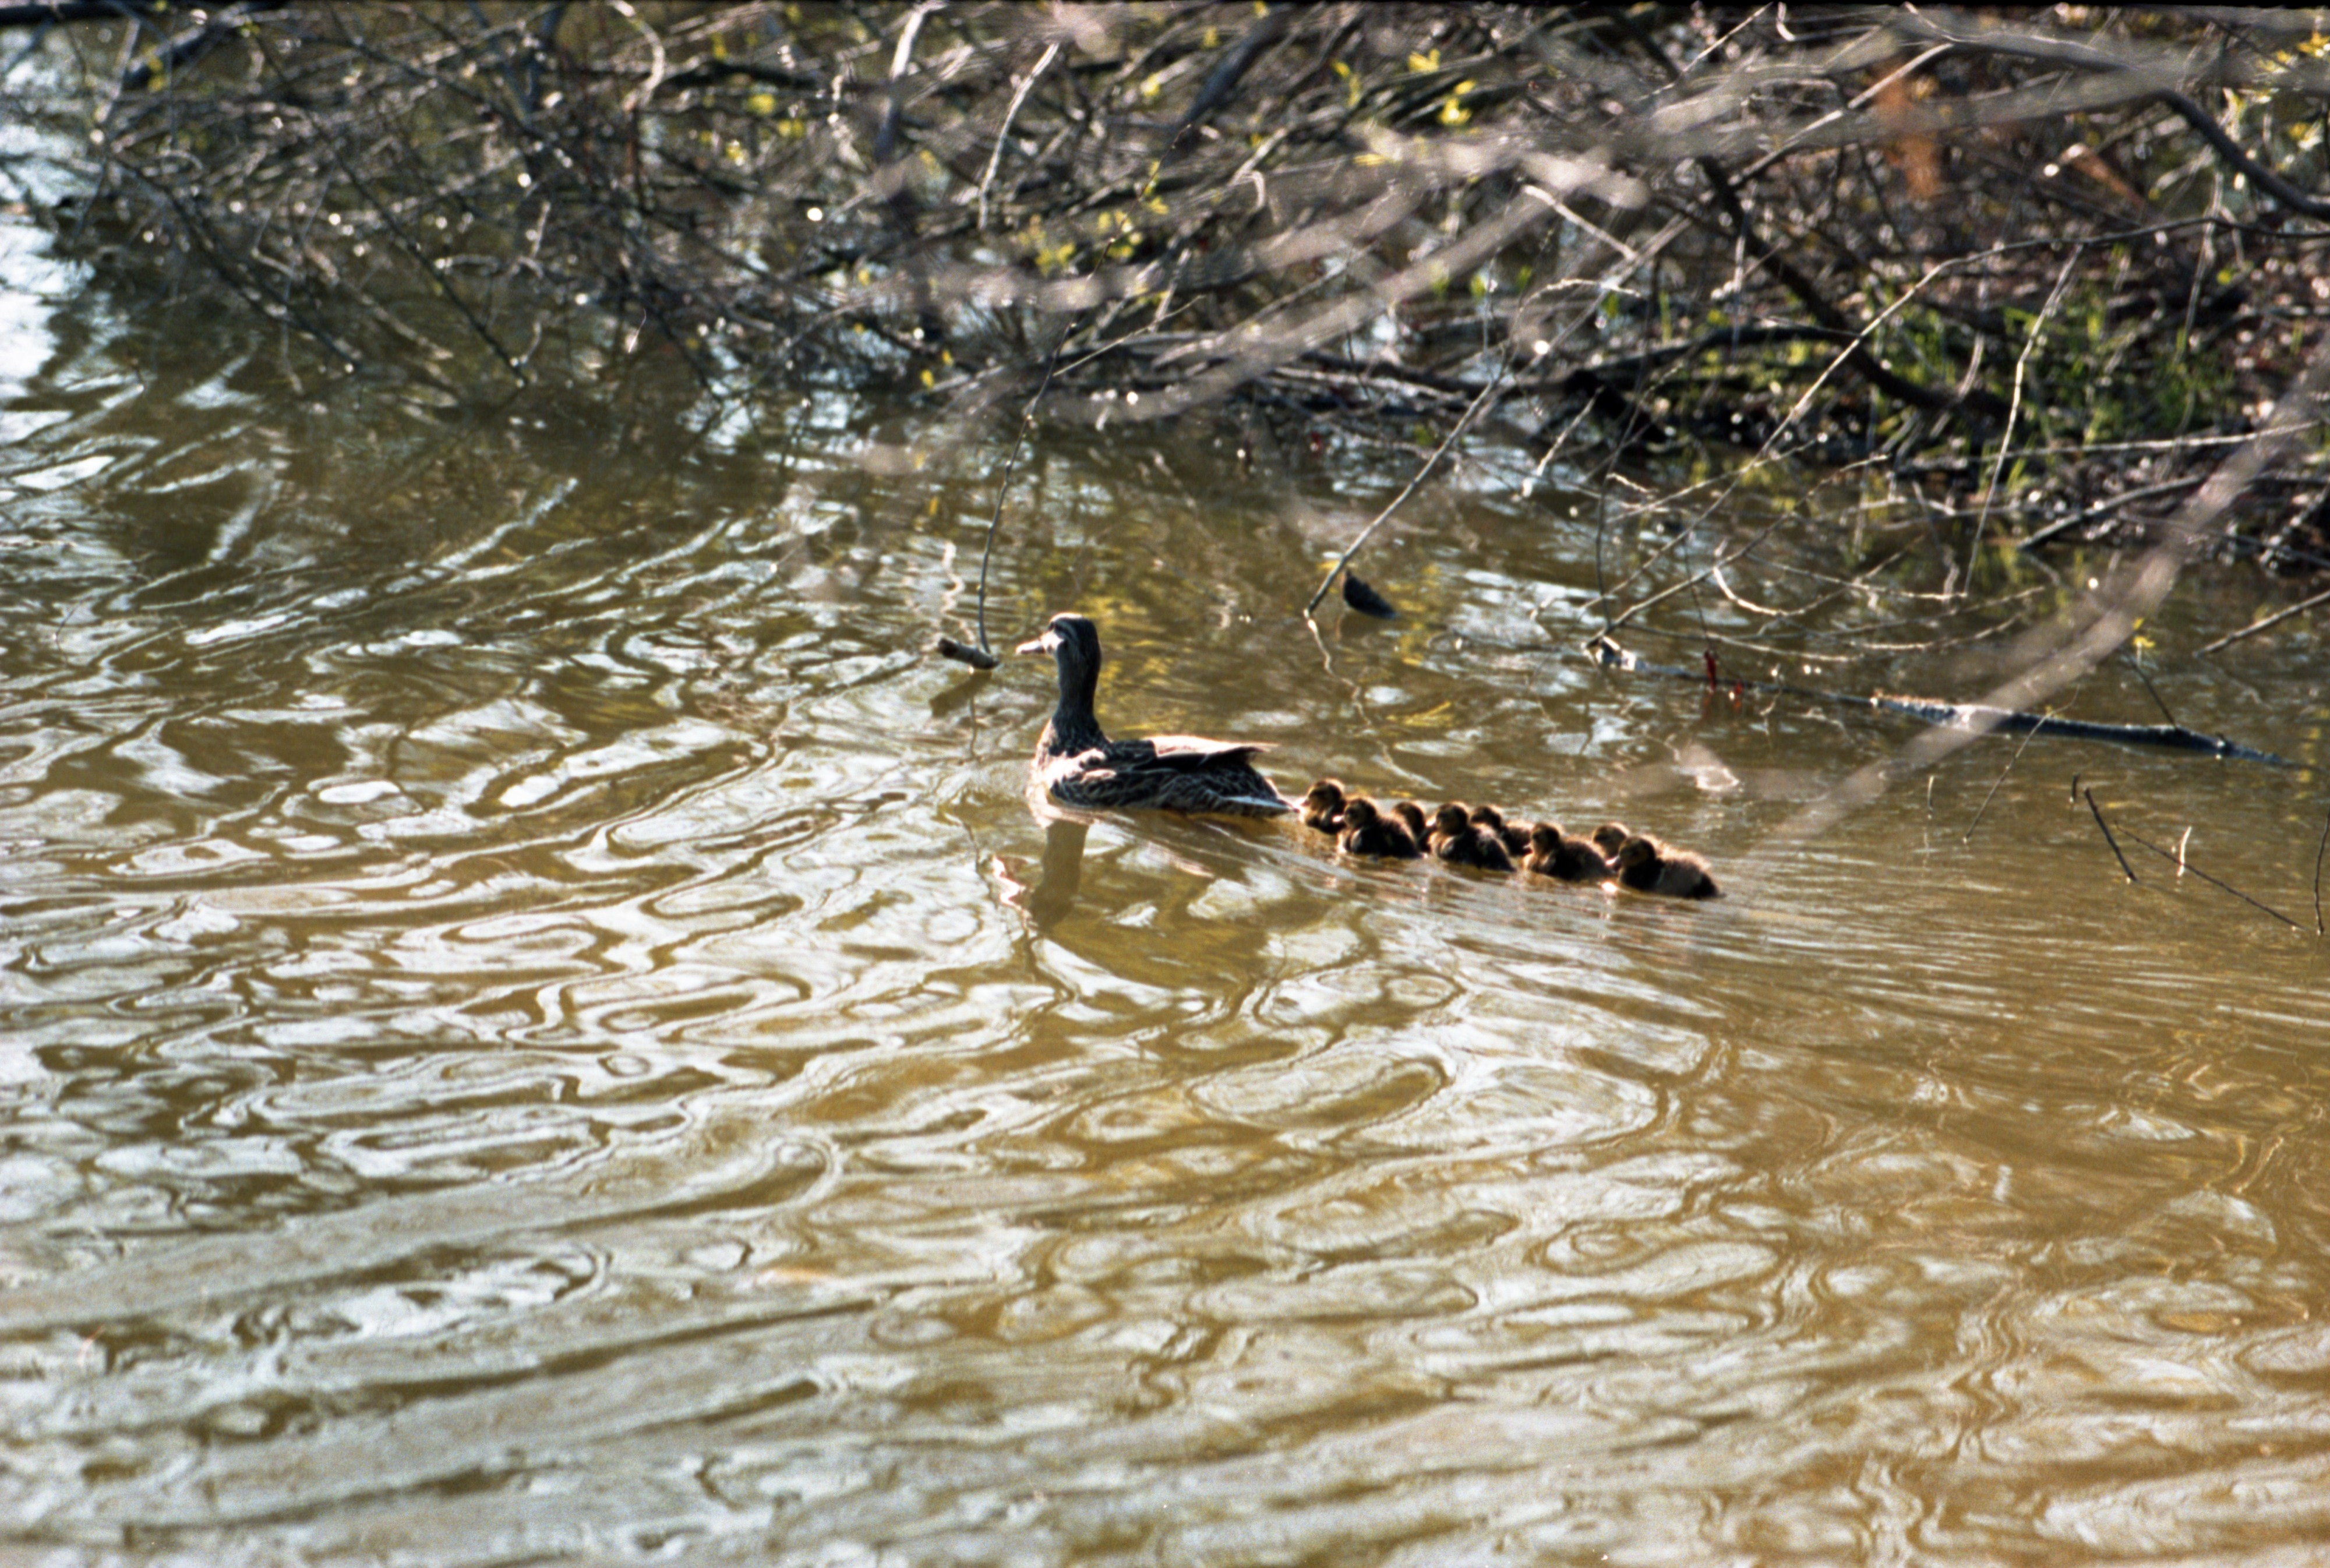 Duck Family In The Water, May 1997 image